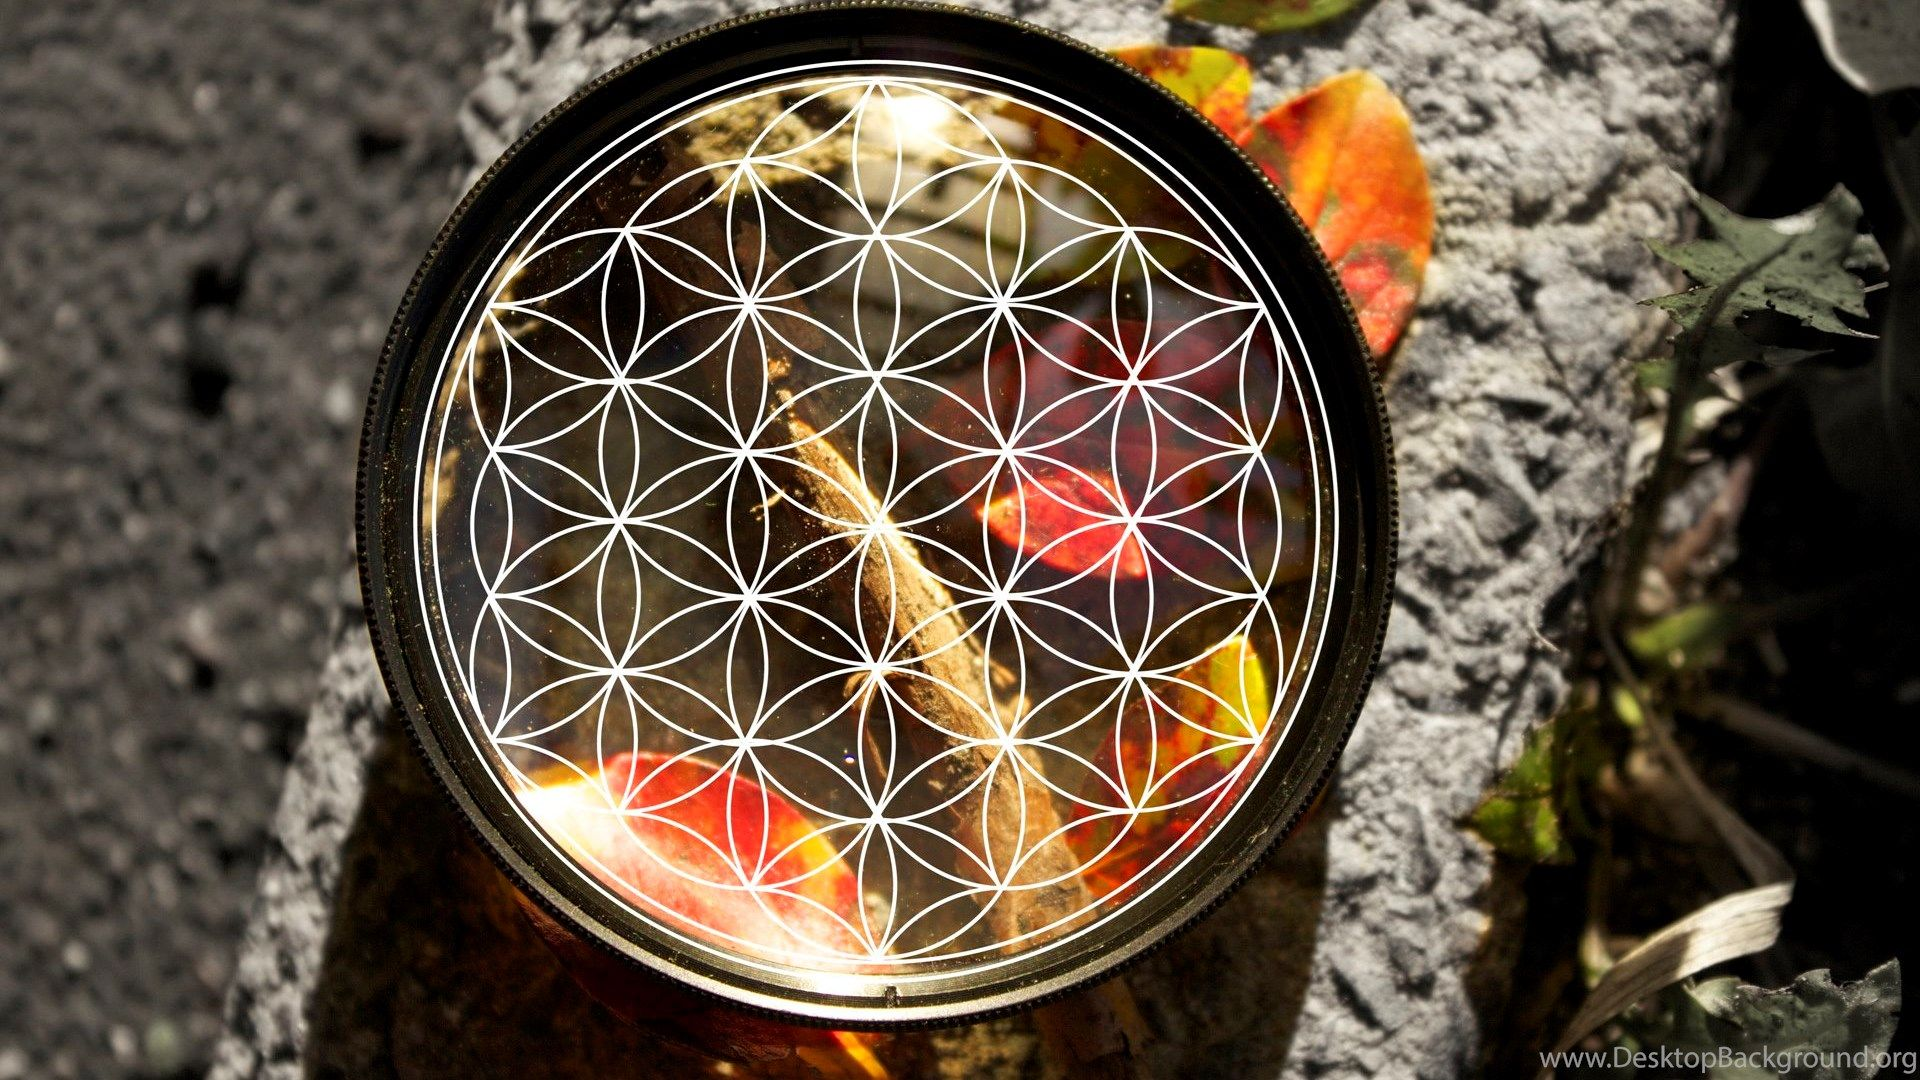 Flower Of Life Wallpapers Top Free Flower Of Life Backgrounds